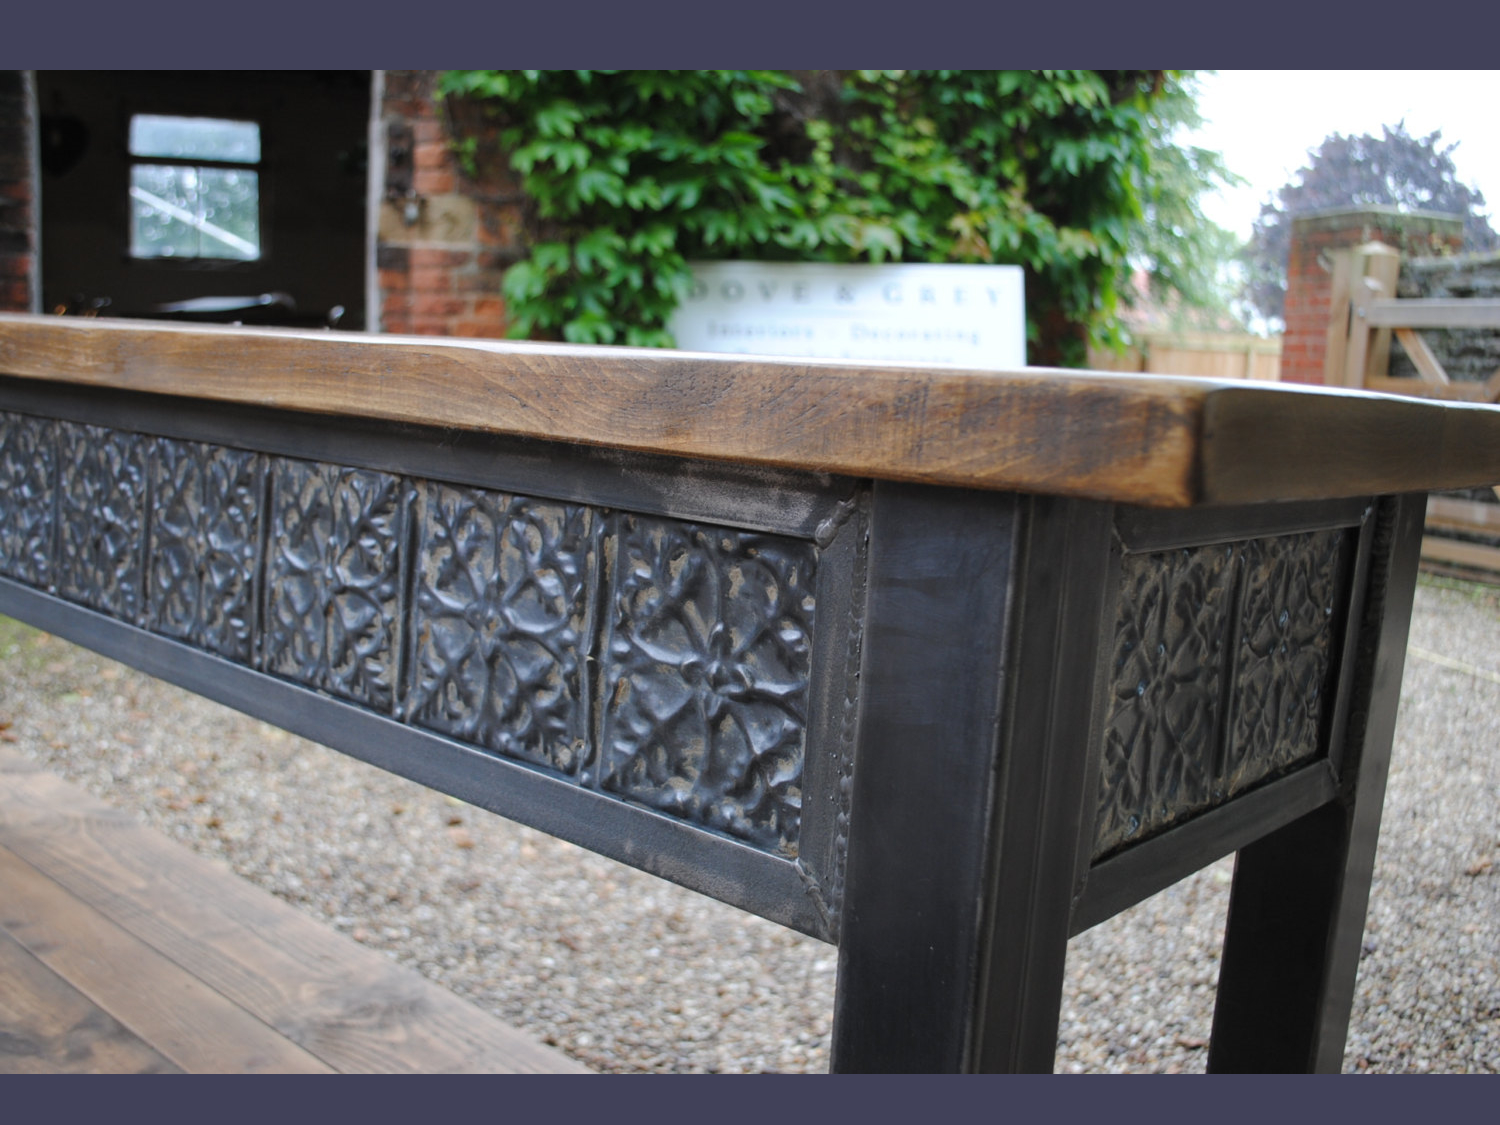 Bespoke Vintage Industrial Style Sideboard - Any Design or Specification